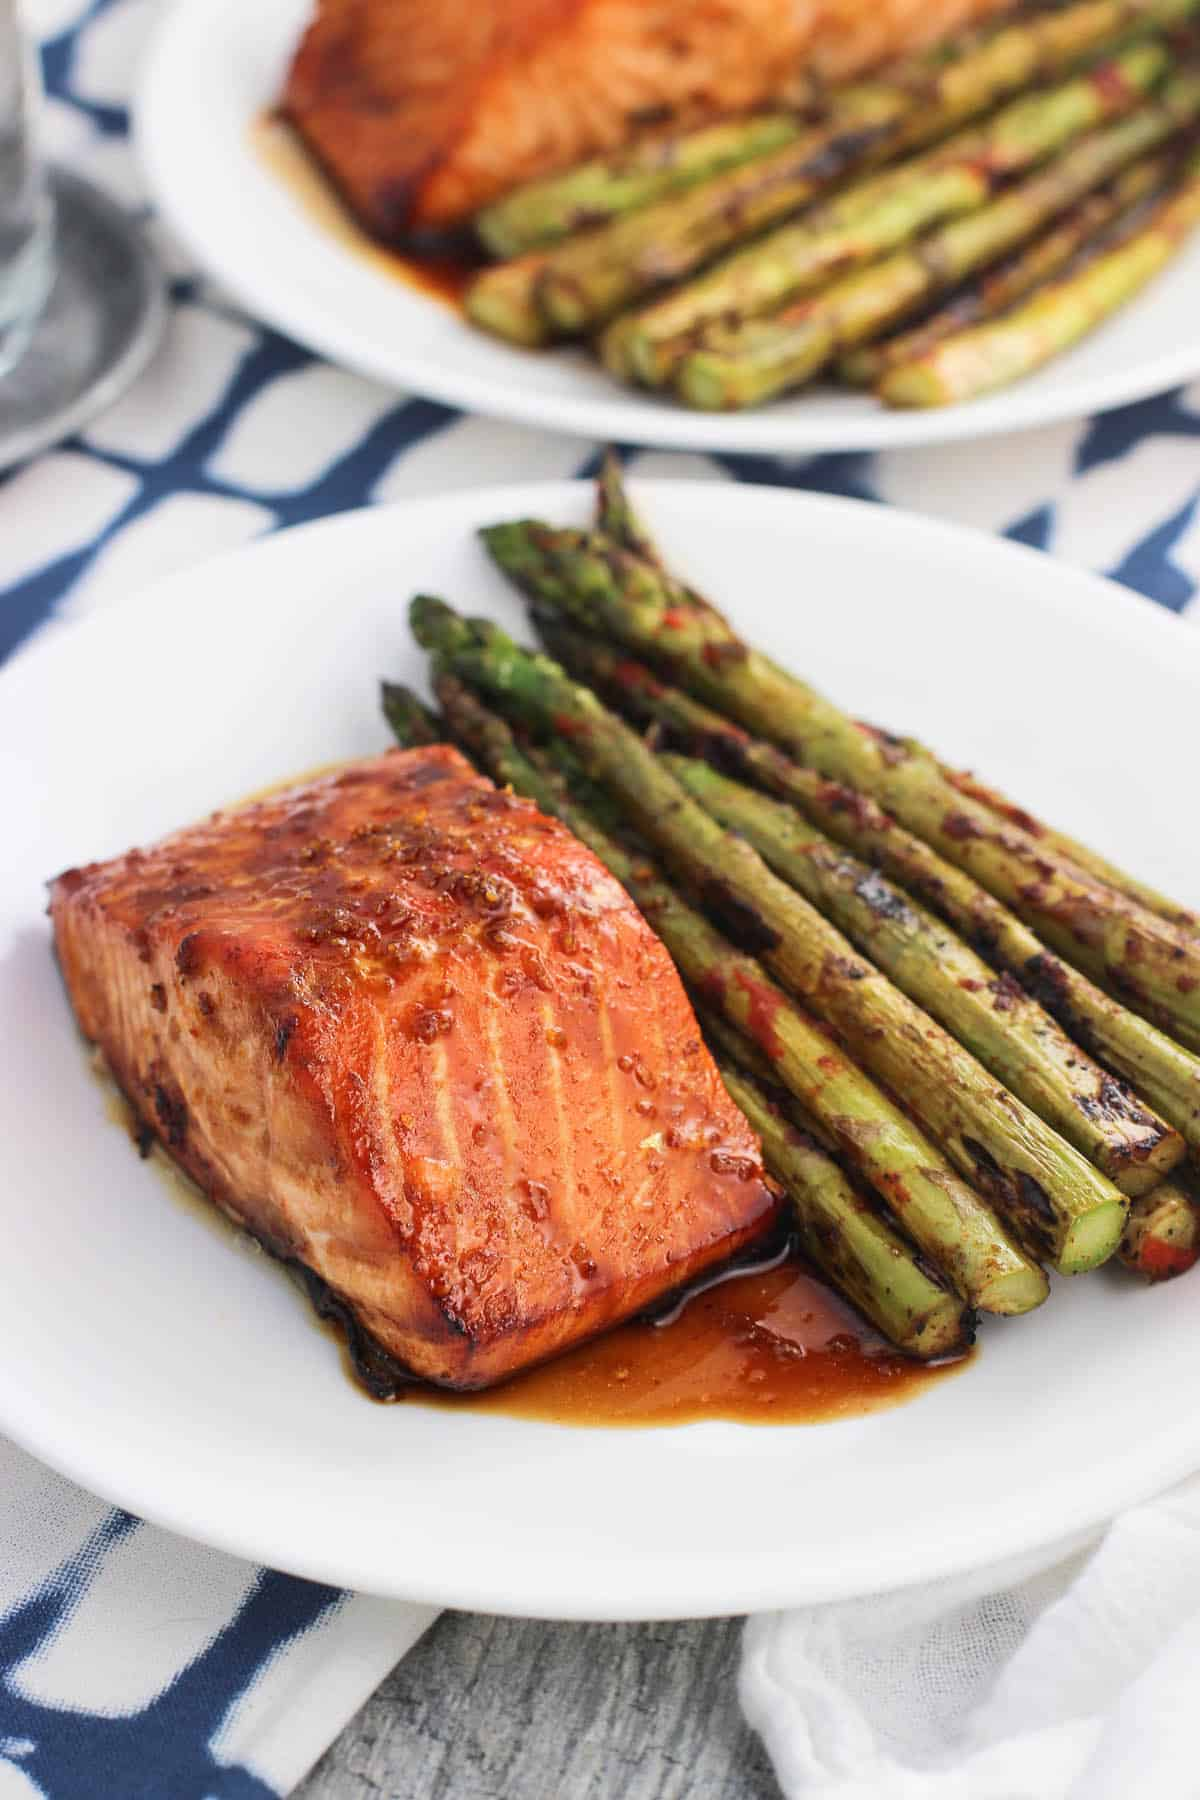 This baked spicy orange salmon recipe takes about 45 minutes from start to finish, including time for a quick marinade! It's a healthy weeknight dinner that uses sriracha, orange zest, honey, and more.